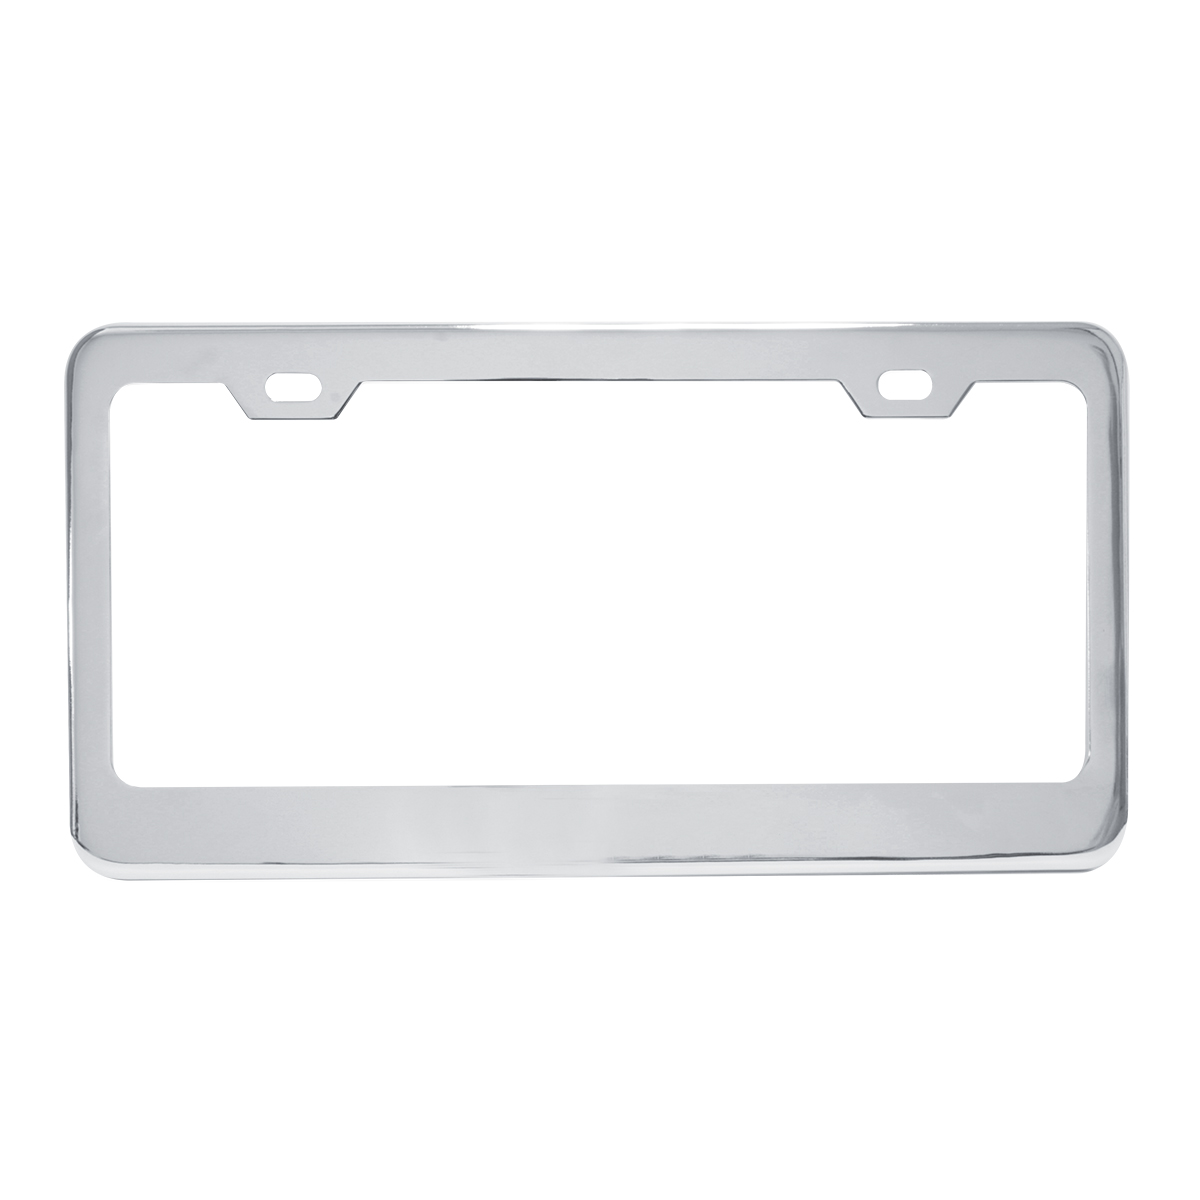 60440 Plain Chrome Plated Steel 2 Hole License Plate Frame